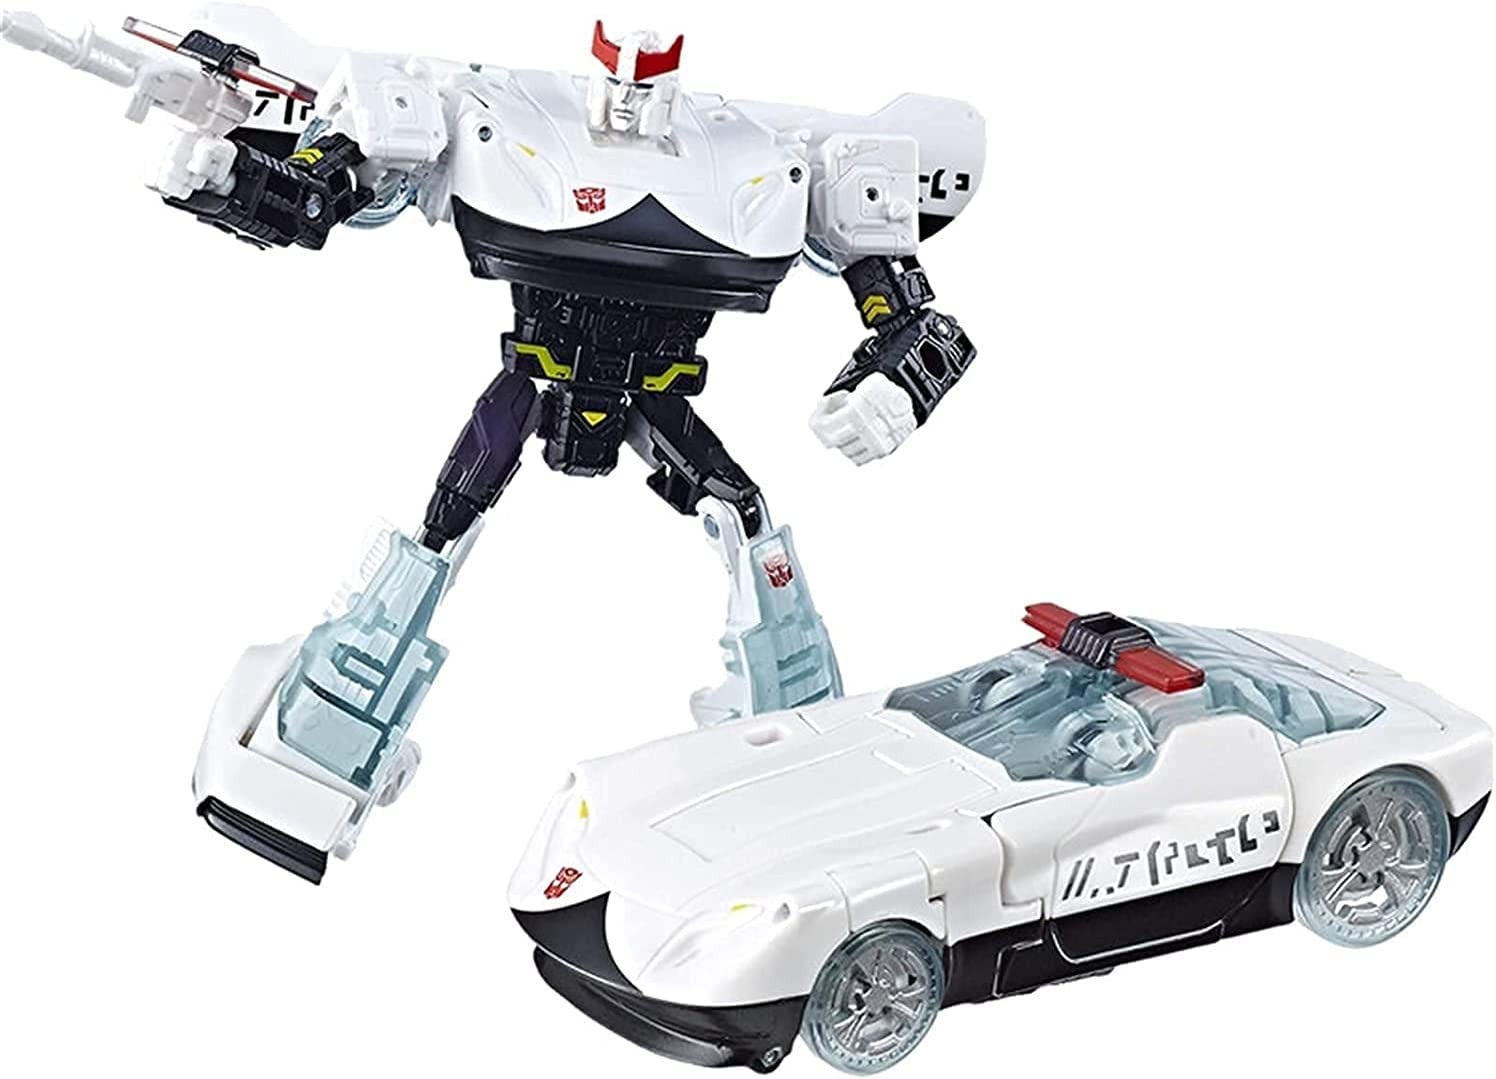 RSVPhandcrafted Transformer Toy Ranking TOP16 famous Generations Cybertron for De War